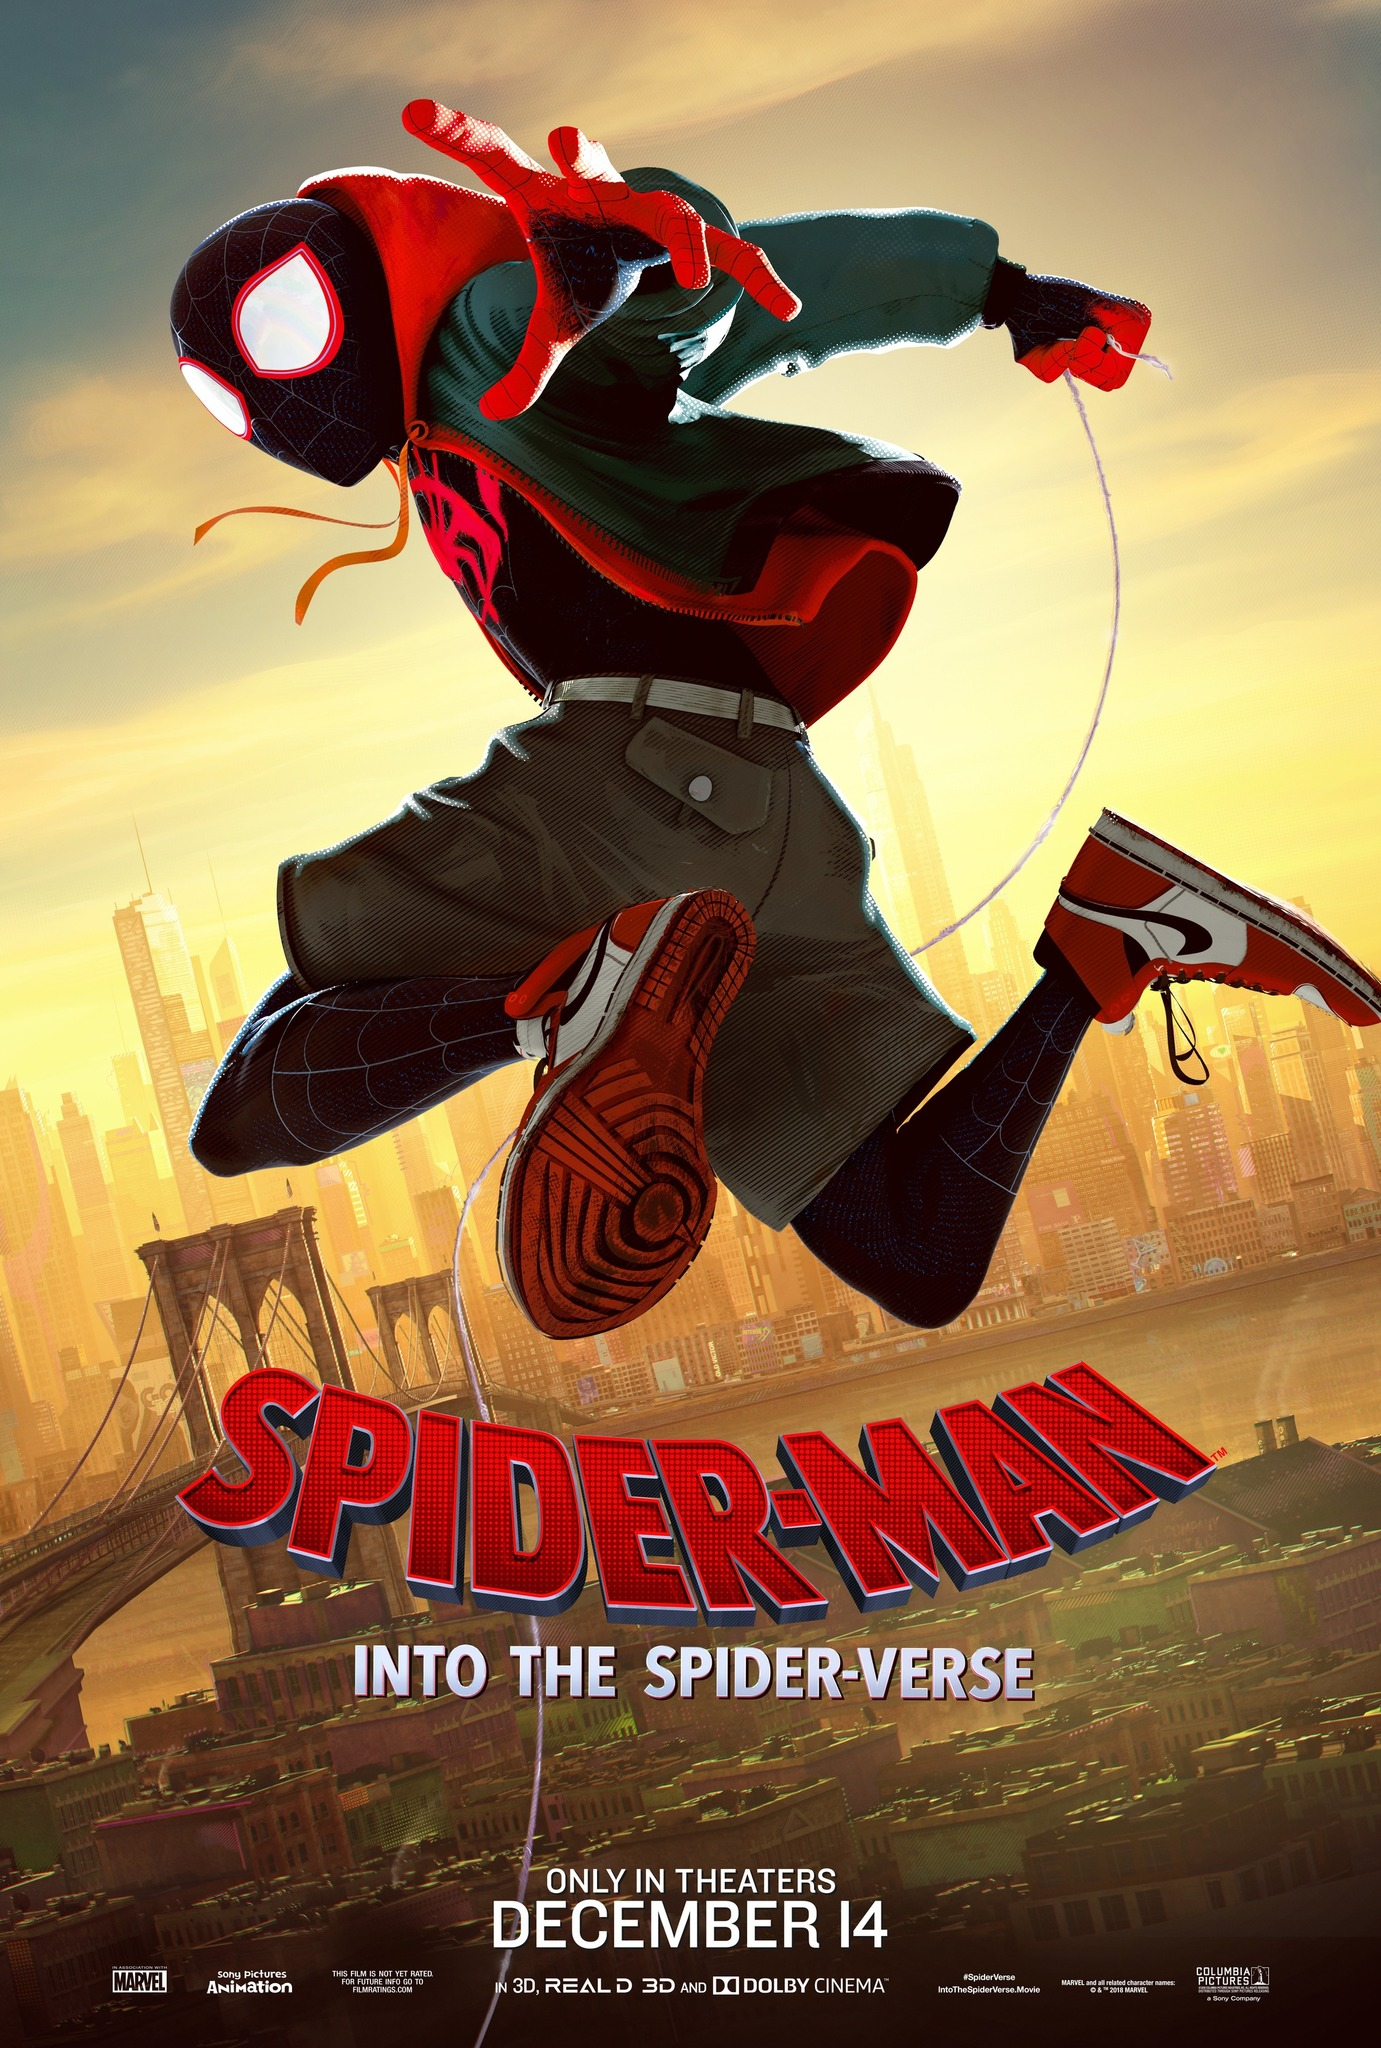 ScreenHub-Movie-SpiderManIntothespiderverse